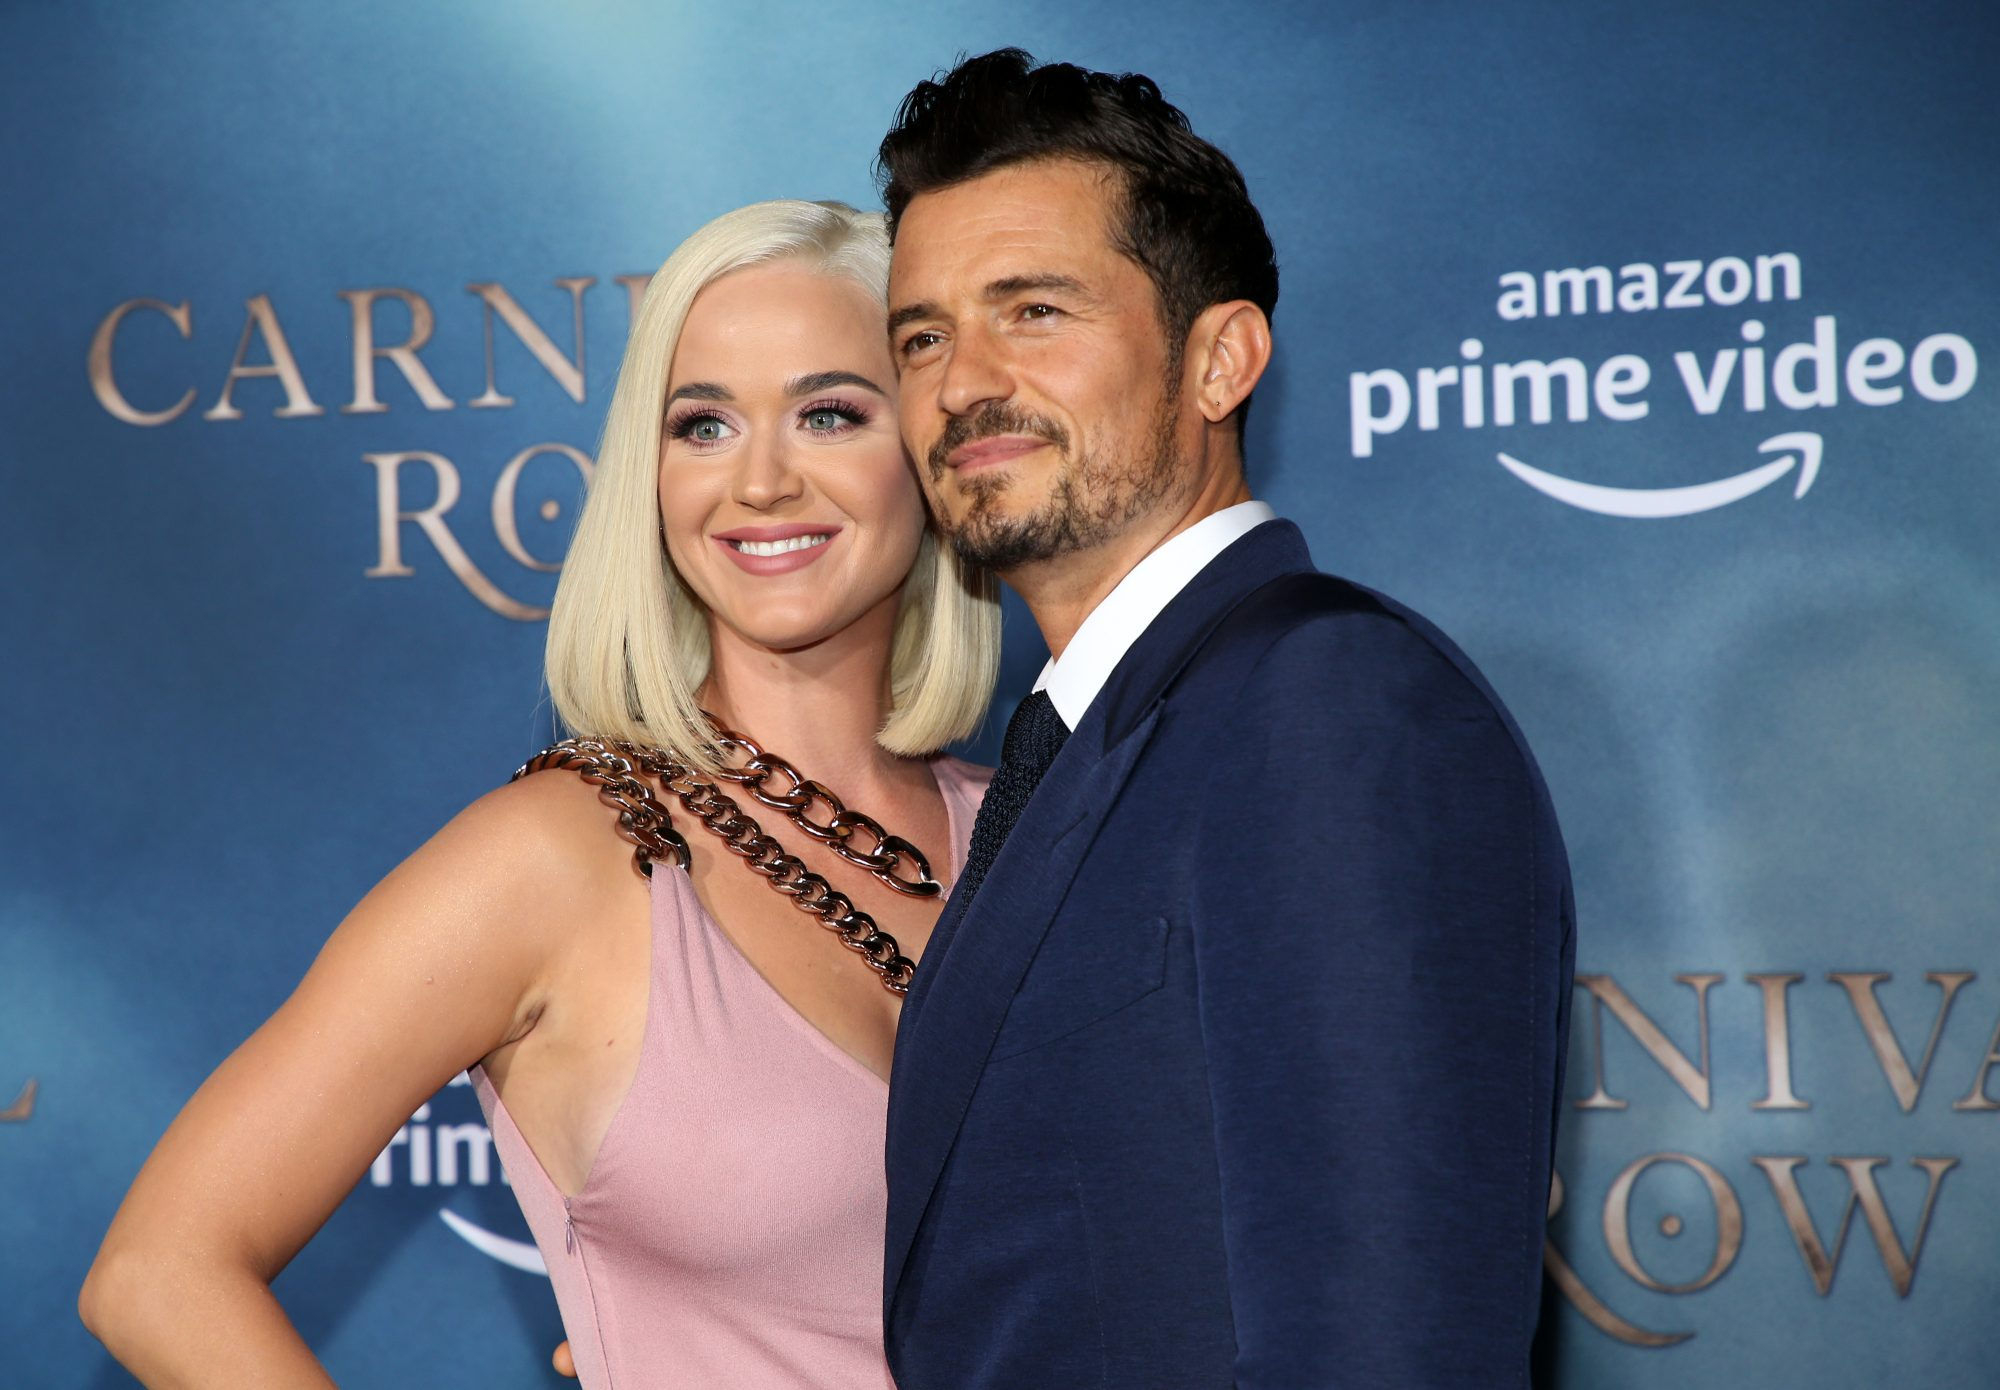 katy perry orlando bloom carnival row red carpet